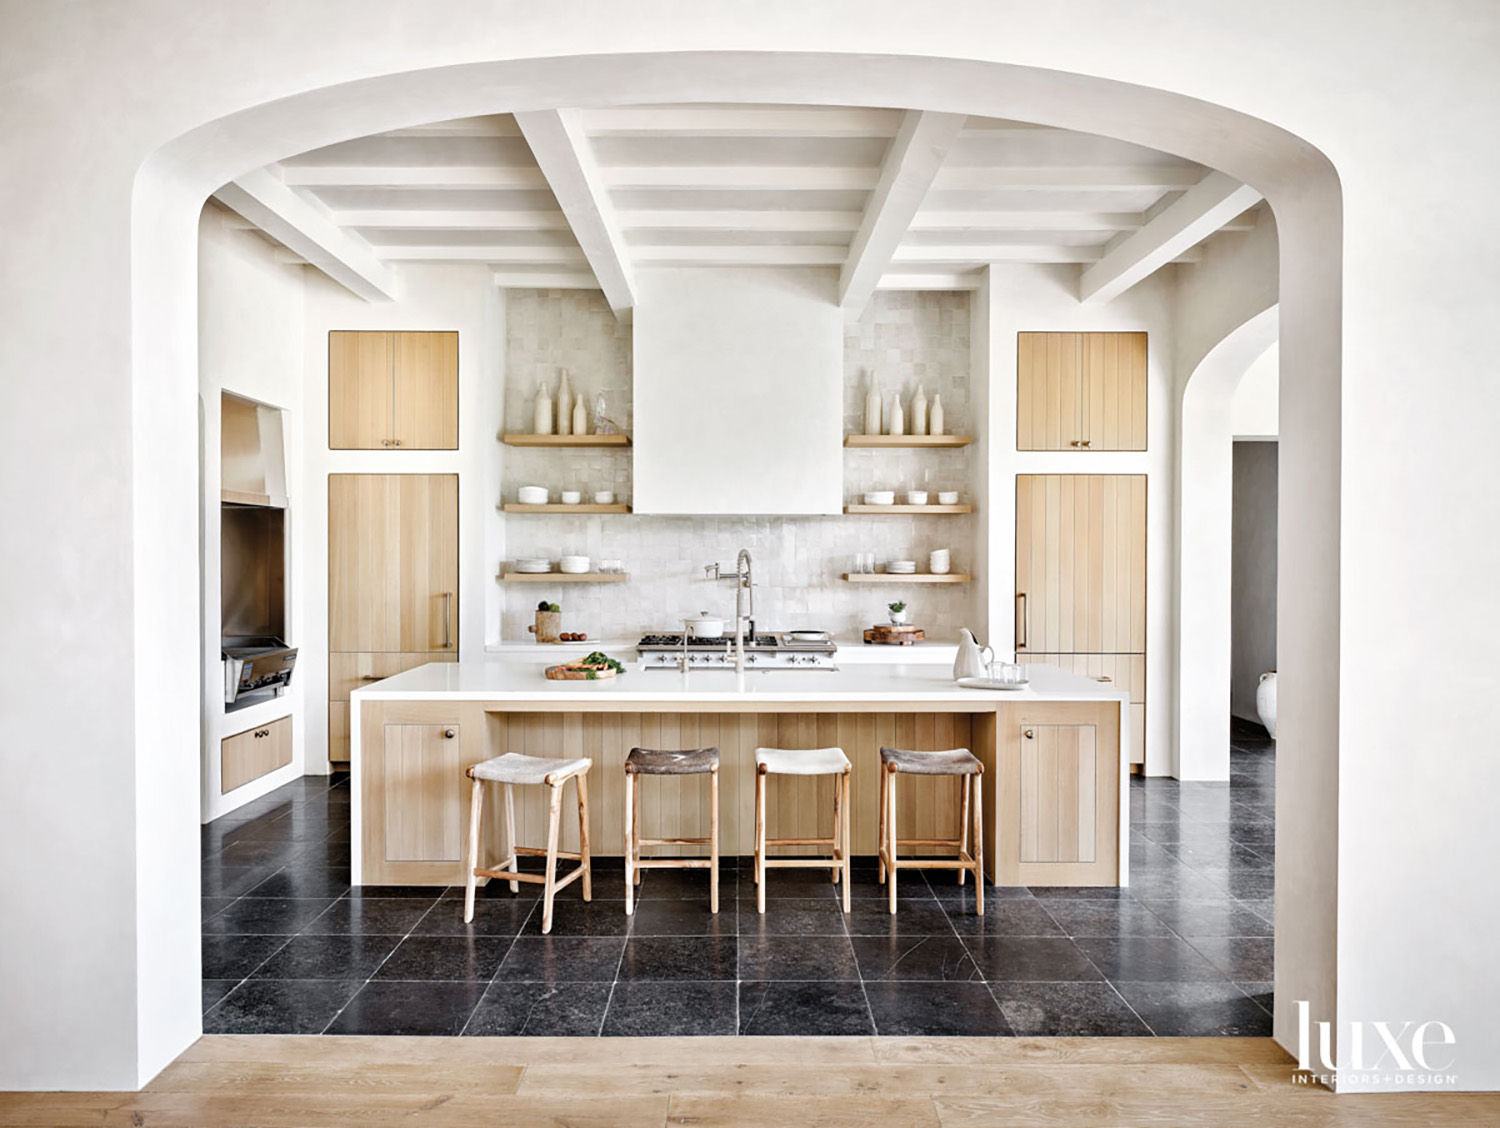 A light-wood-and-white kitchen with cowhide...